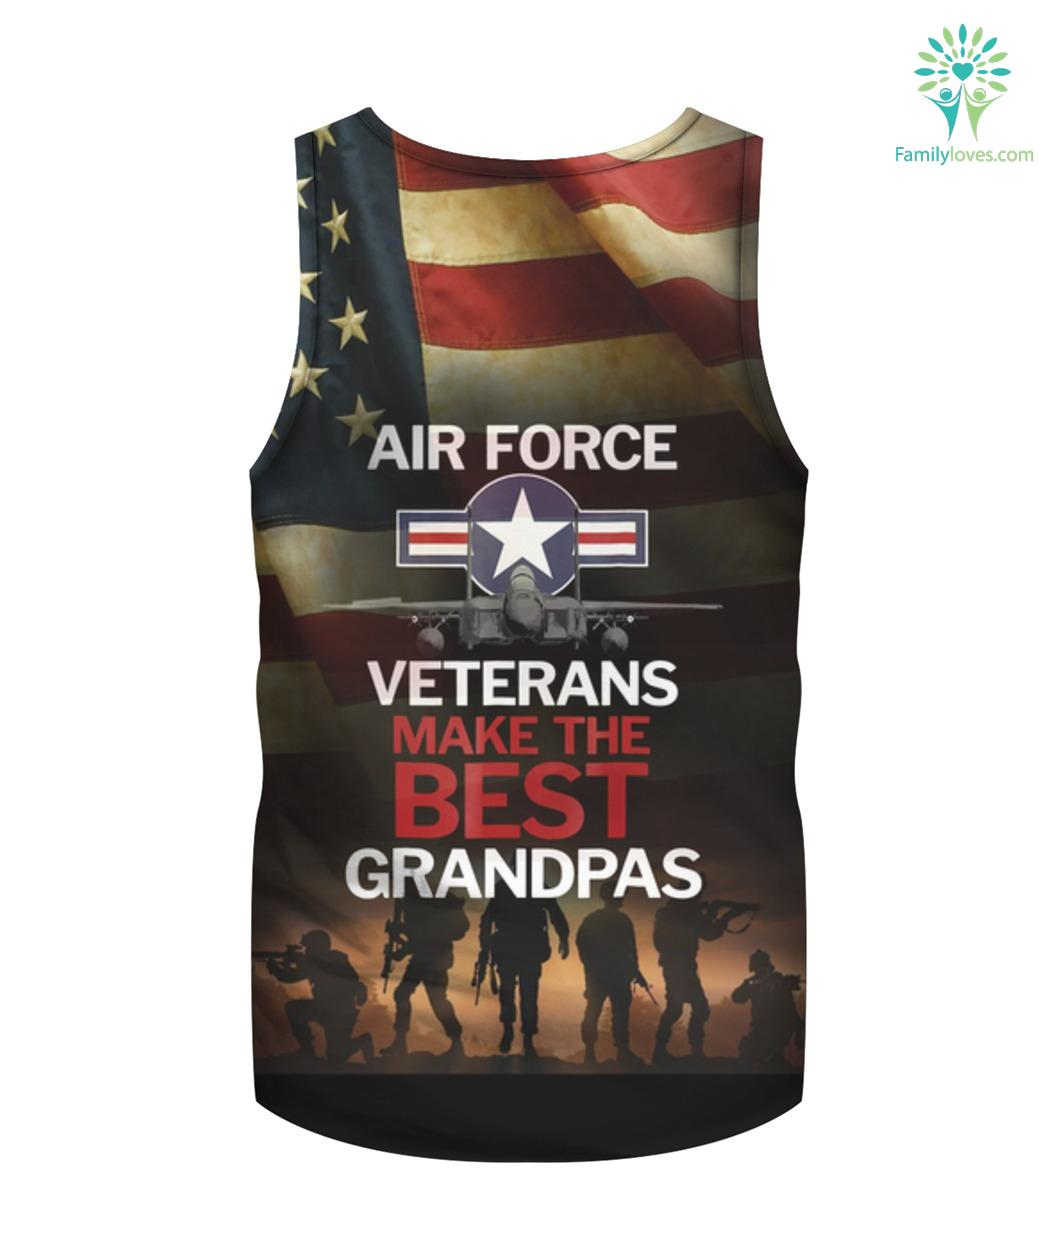 Air Force Veterans Make the Best Grandpas Familyloves.com